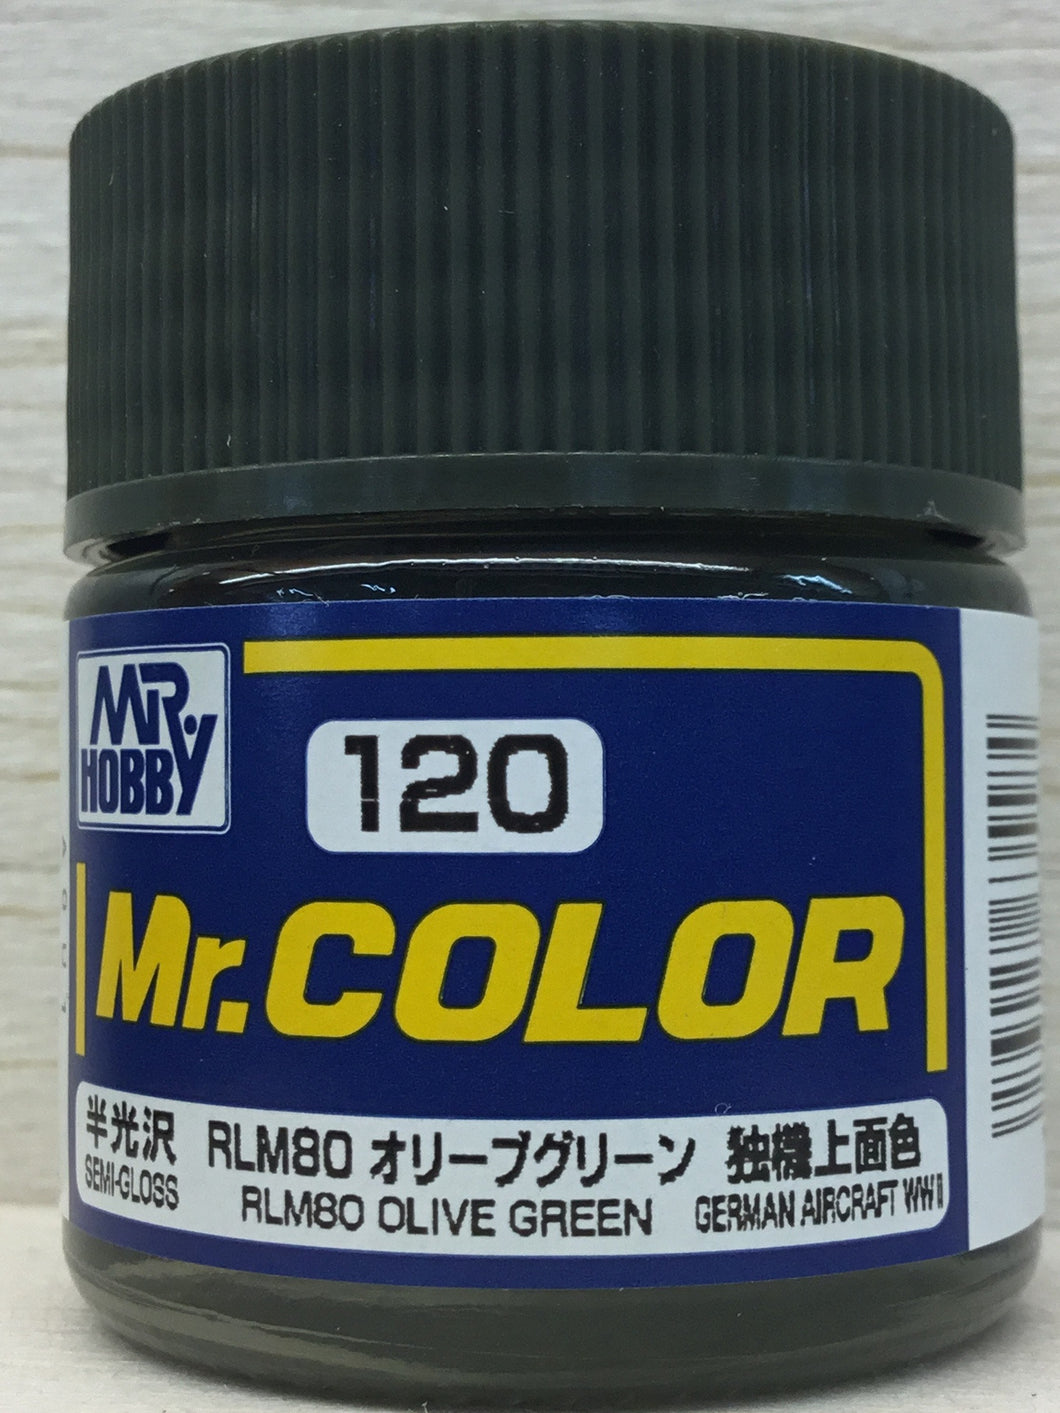 GUNZE MR COLOR C120 SEMI GLOSS RLM 80 OLIVE GREEN